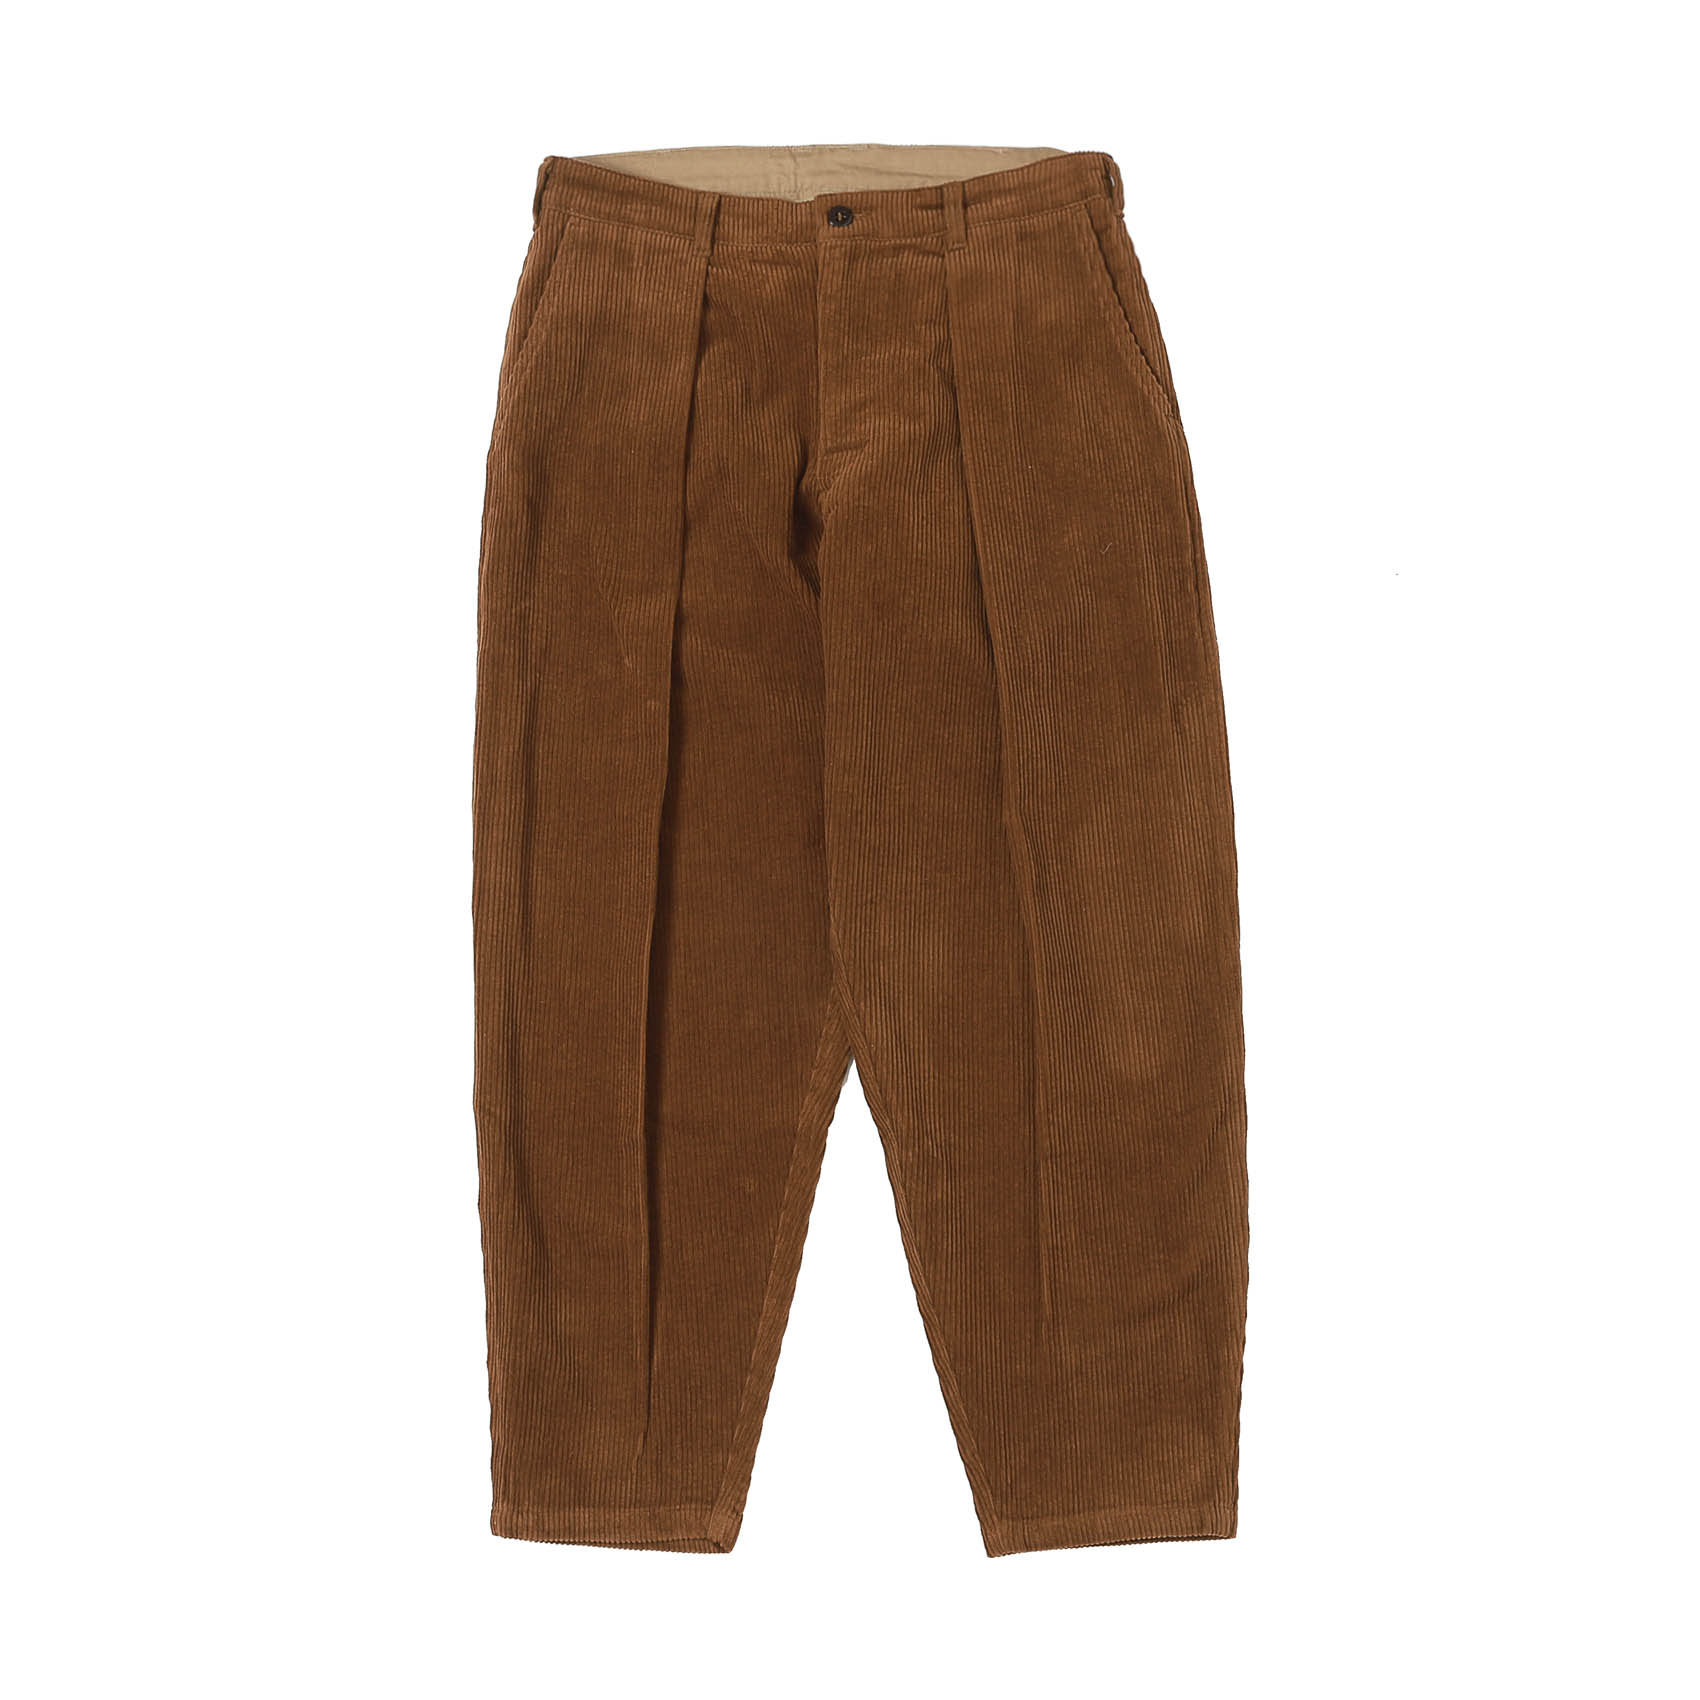 CORDUROY RIDING PANTS - CHESTNUT